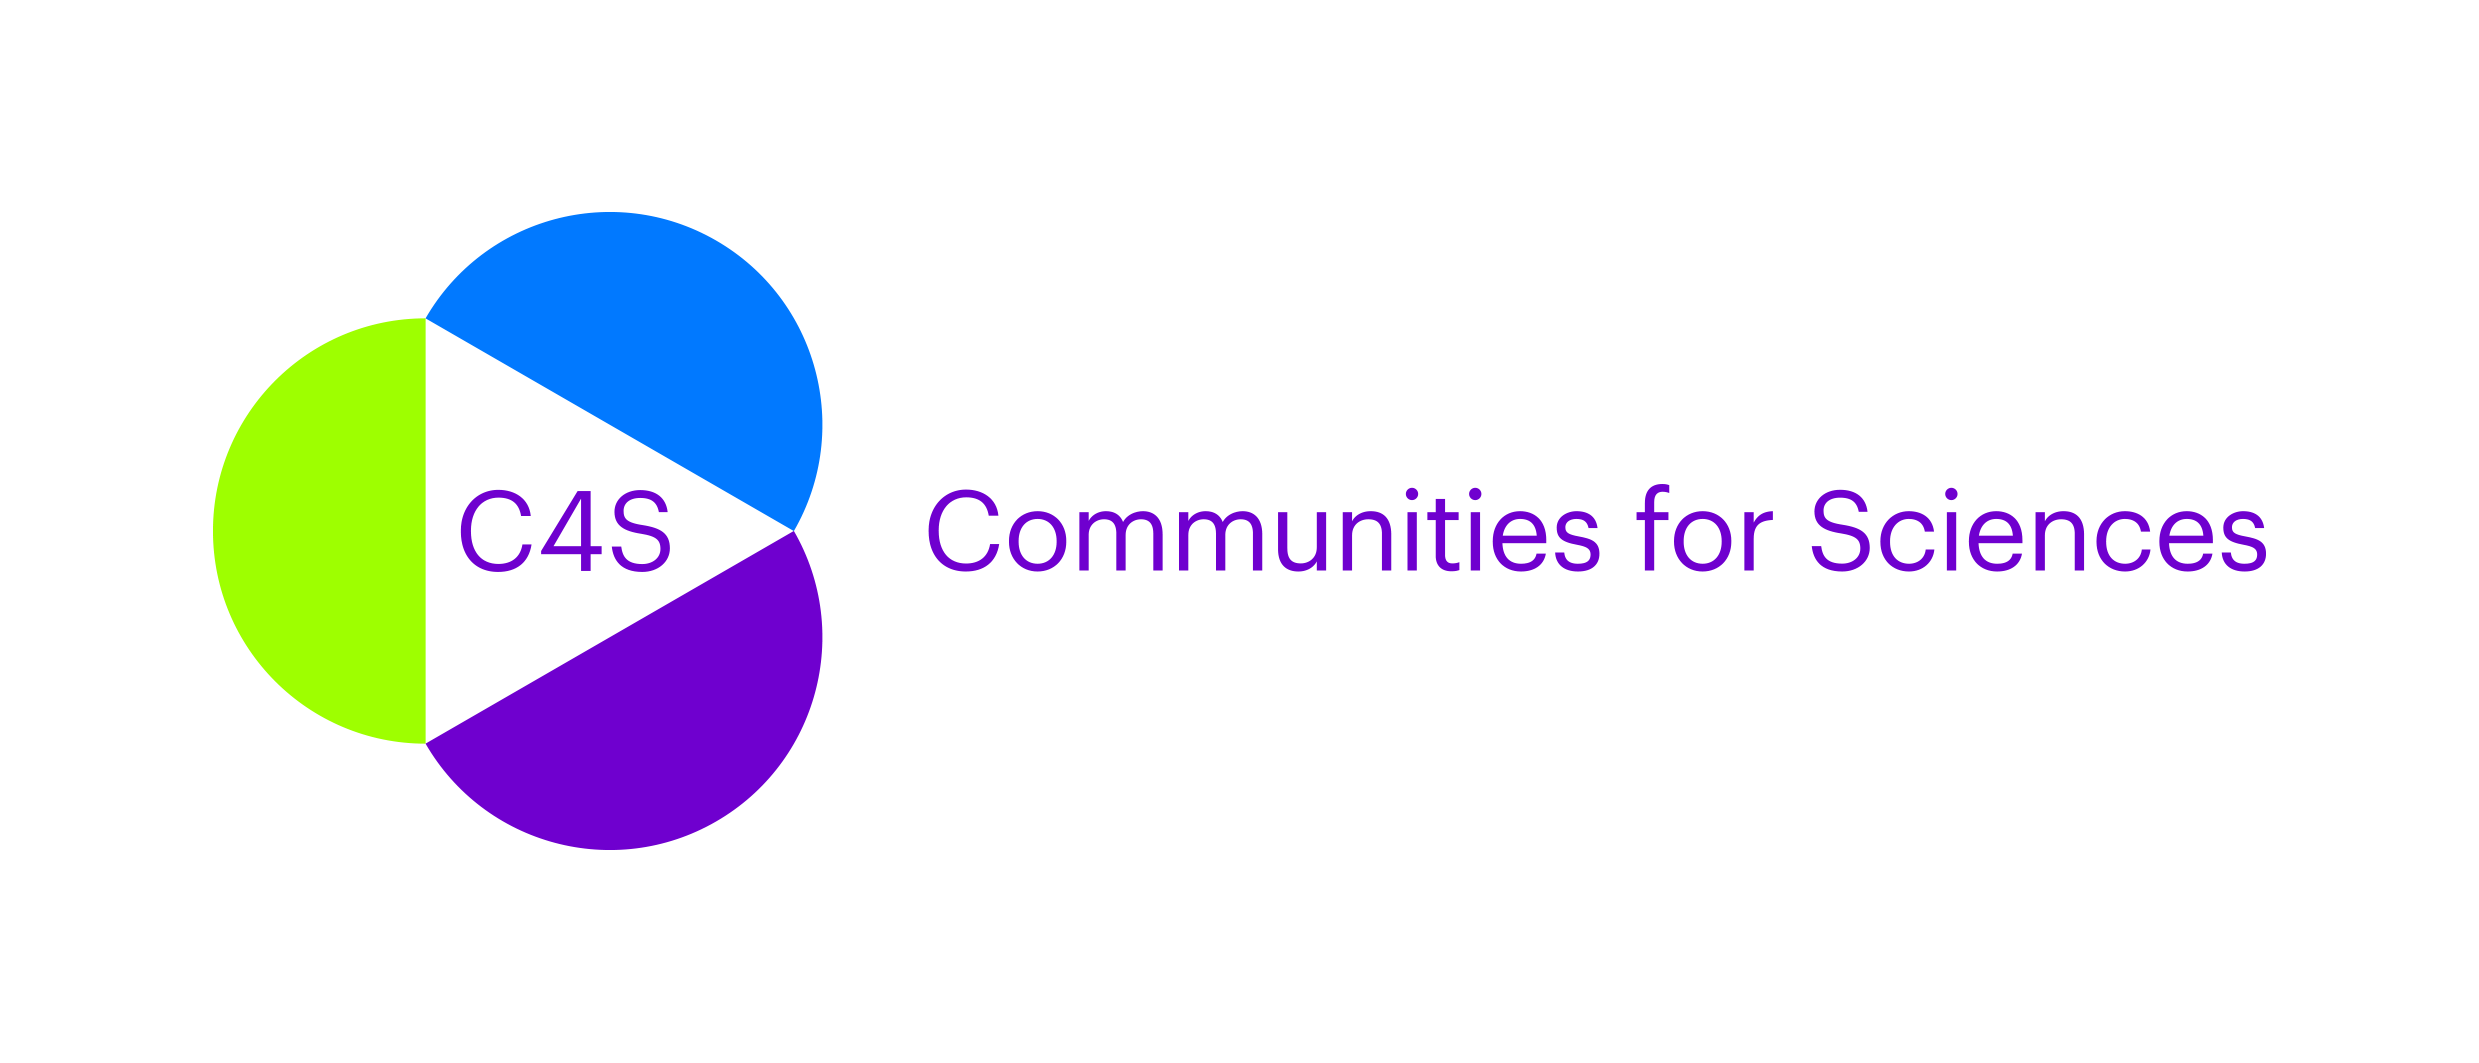 Communities for Sciences